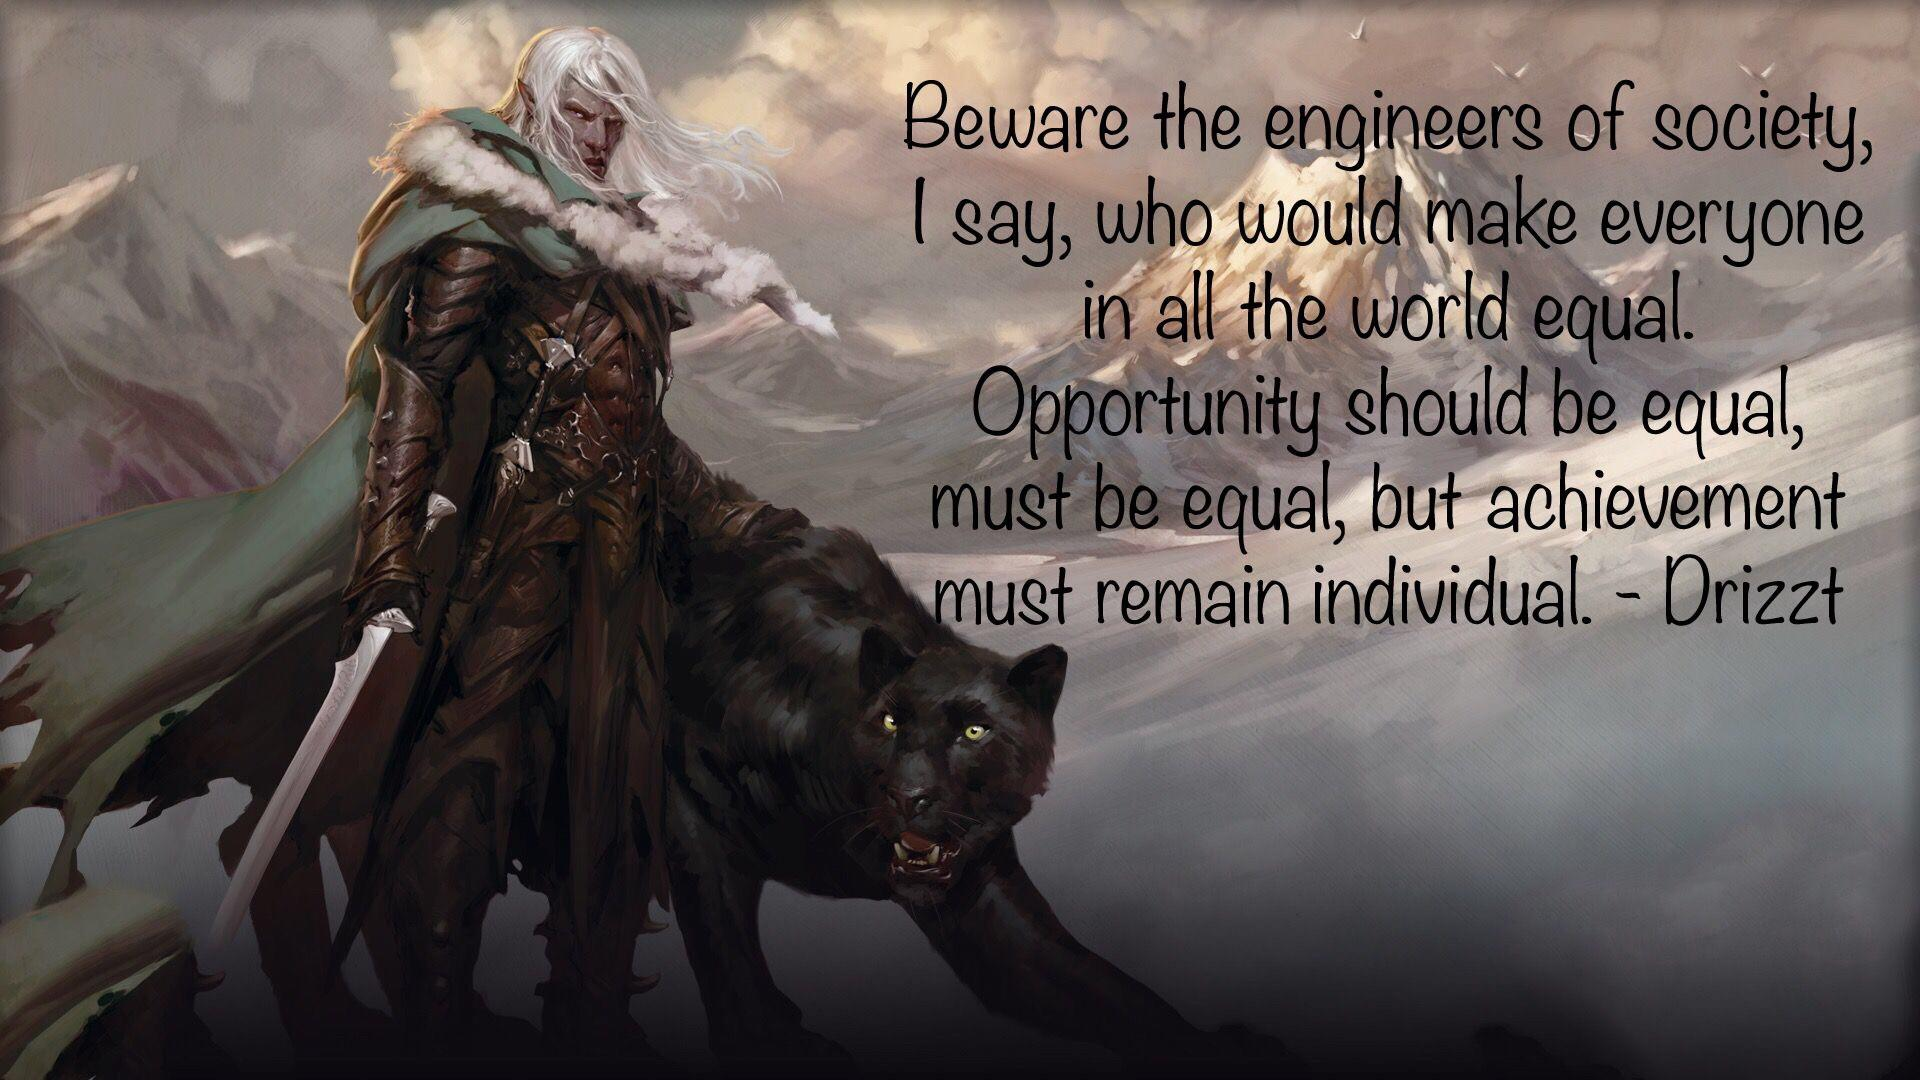 """Beware the engineers of society, I say, who would make everyone in all the world equal. Opportunity should be equal, must be equal, but achievement must remain individual."" – Drizzt Do'Urden [1920 x 1080][OC]"